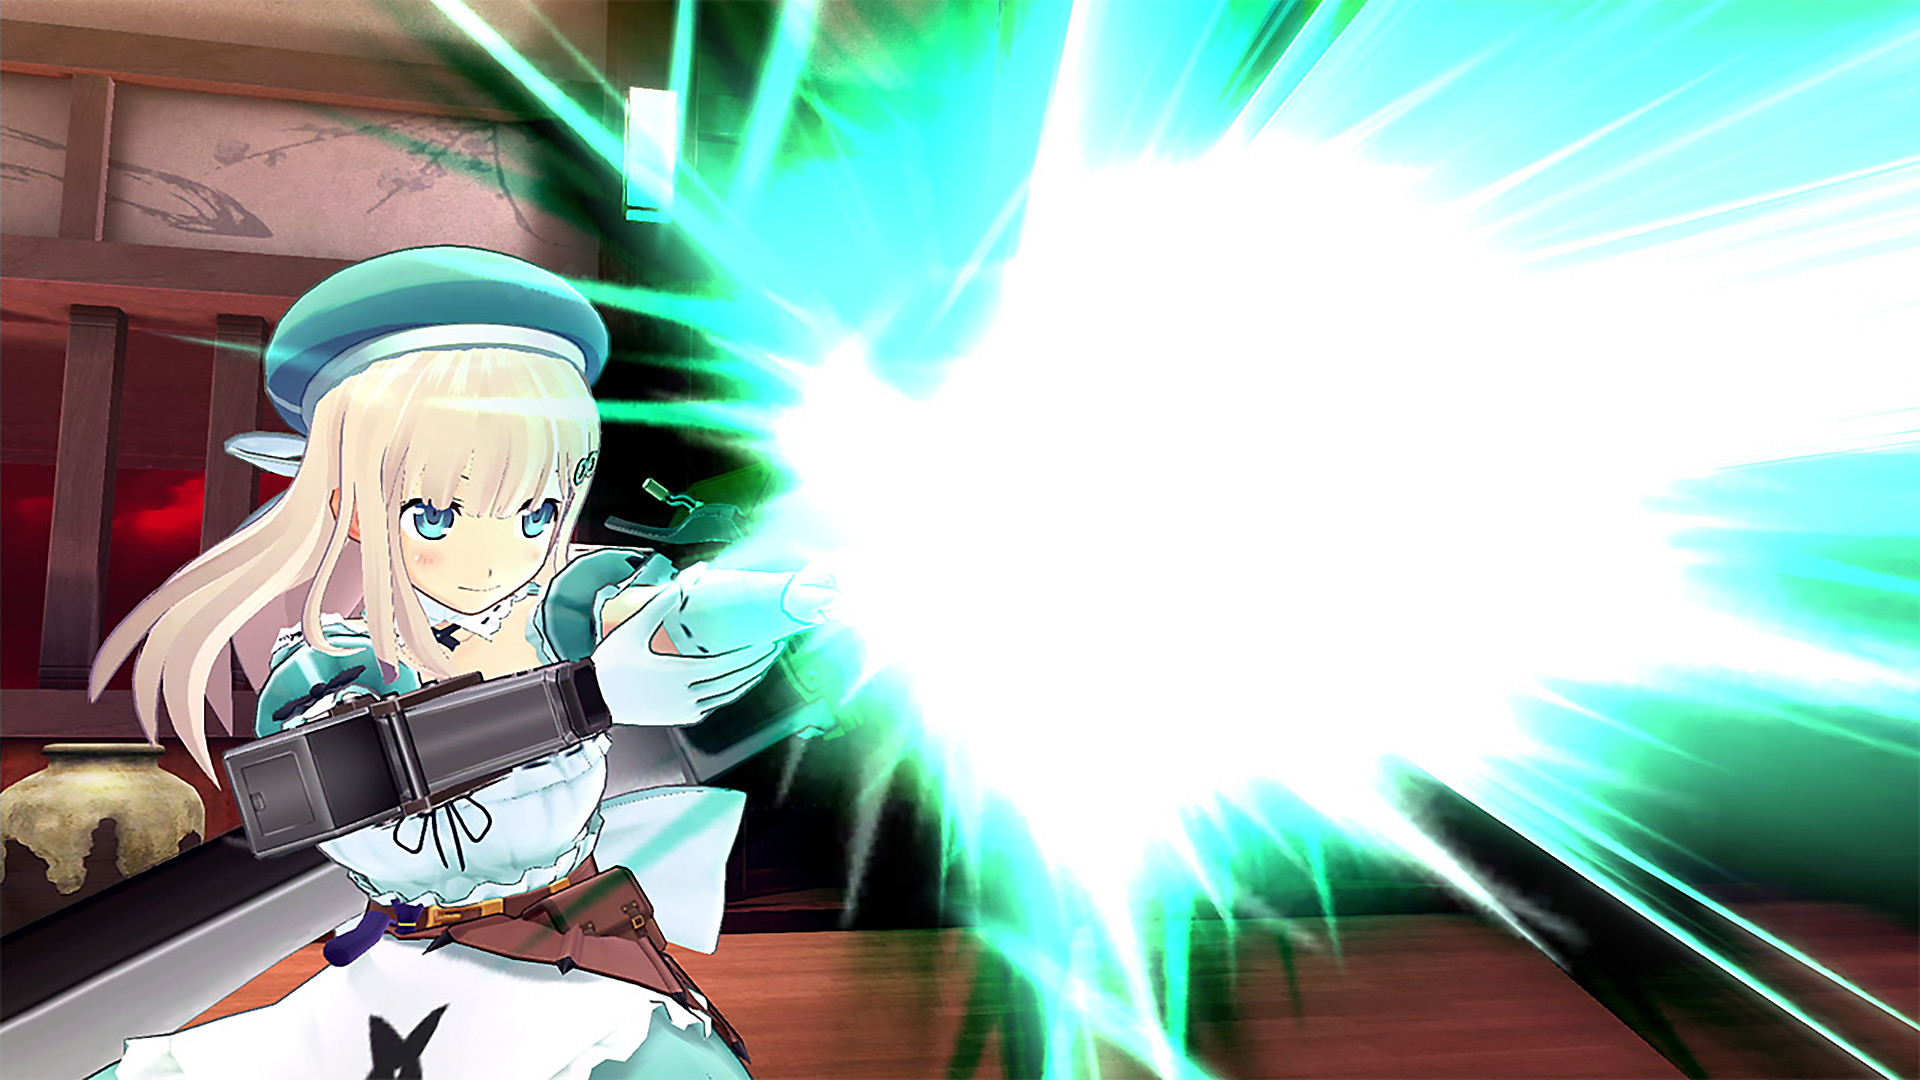 Pantalla de SENRAN KAGURA Burst Re:Newal